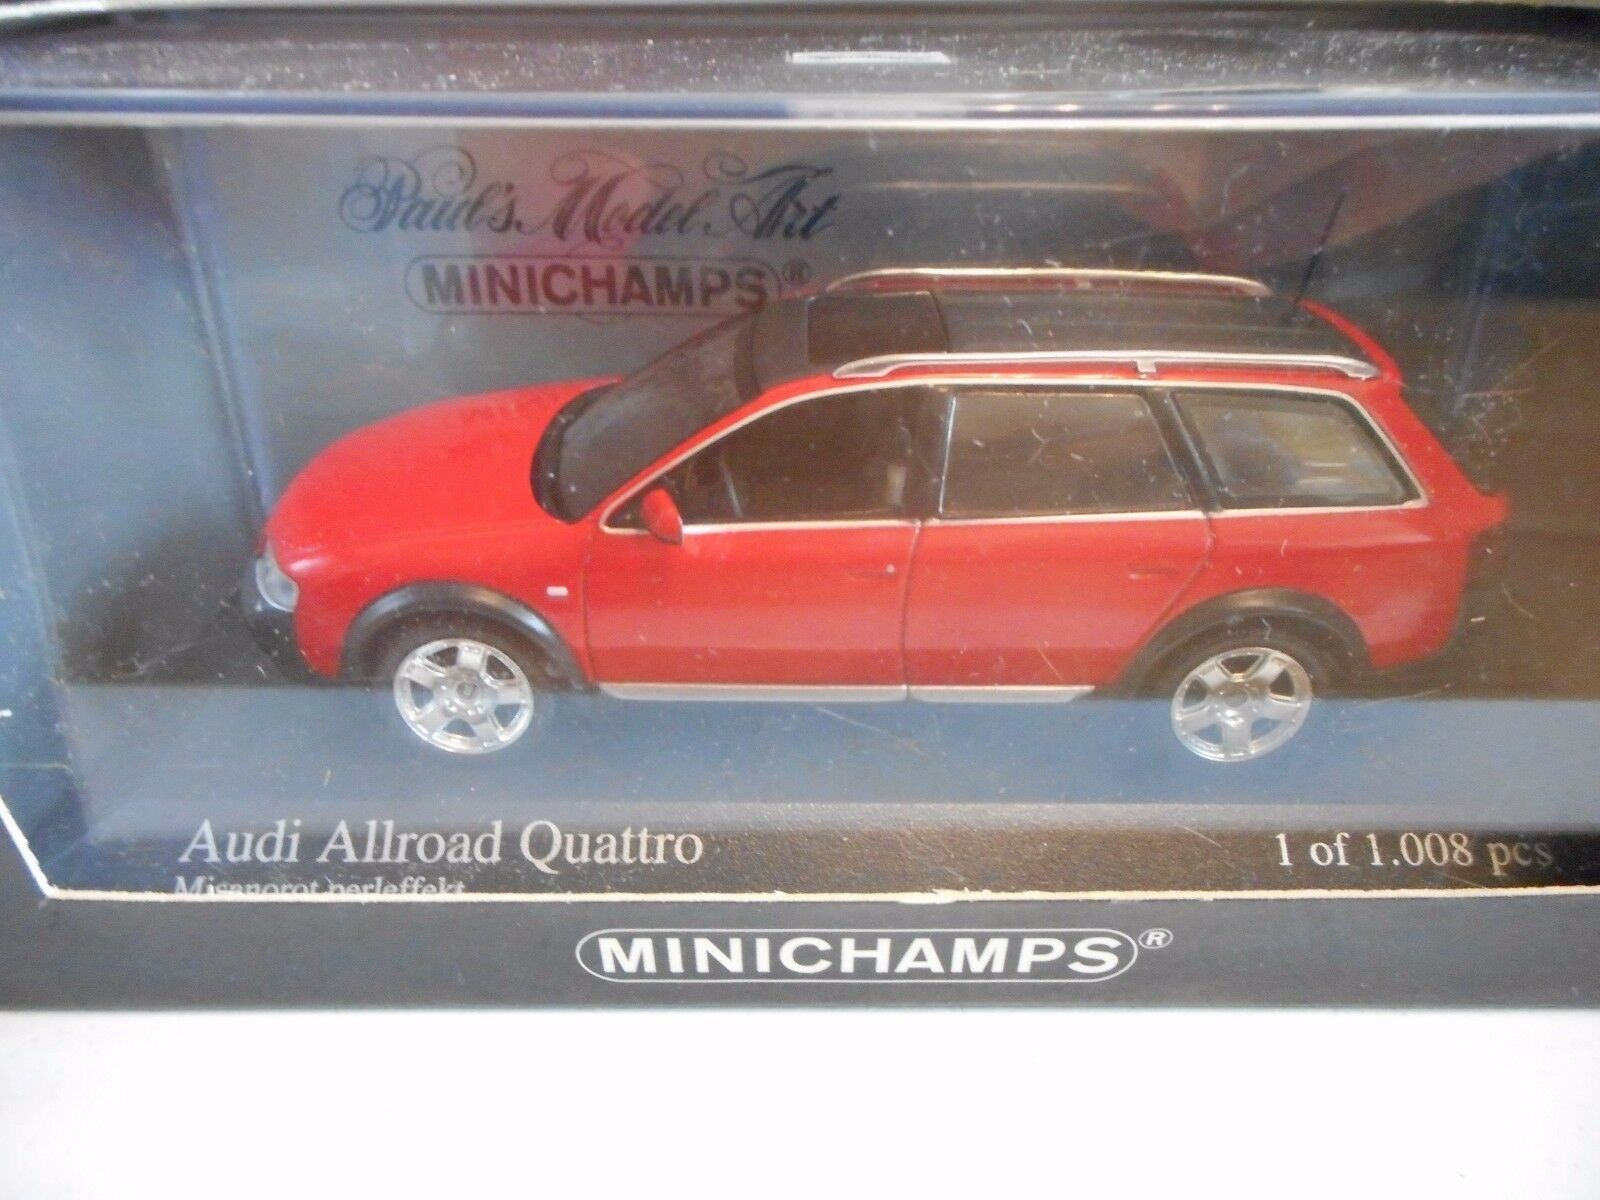 Minichamps Audi Allroad Quattro in Red Red Red on 1 43 in Box 23adff